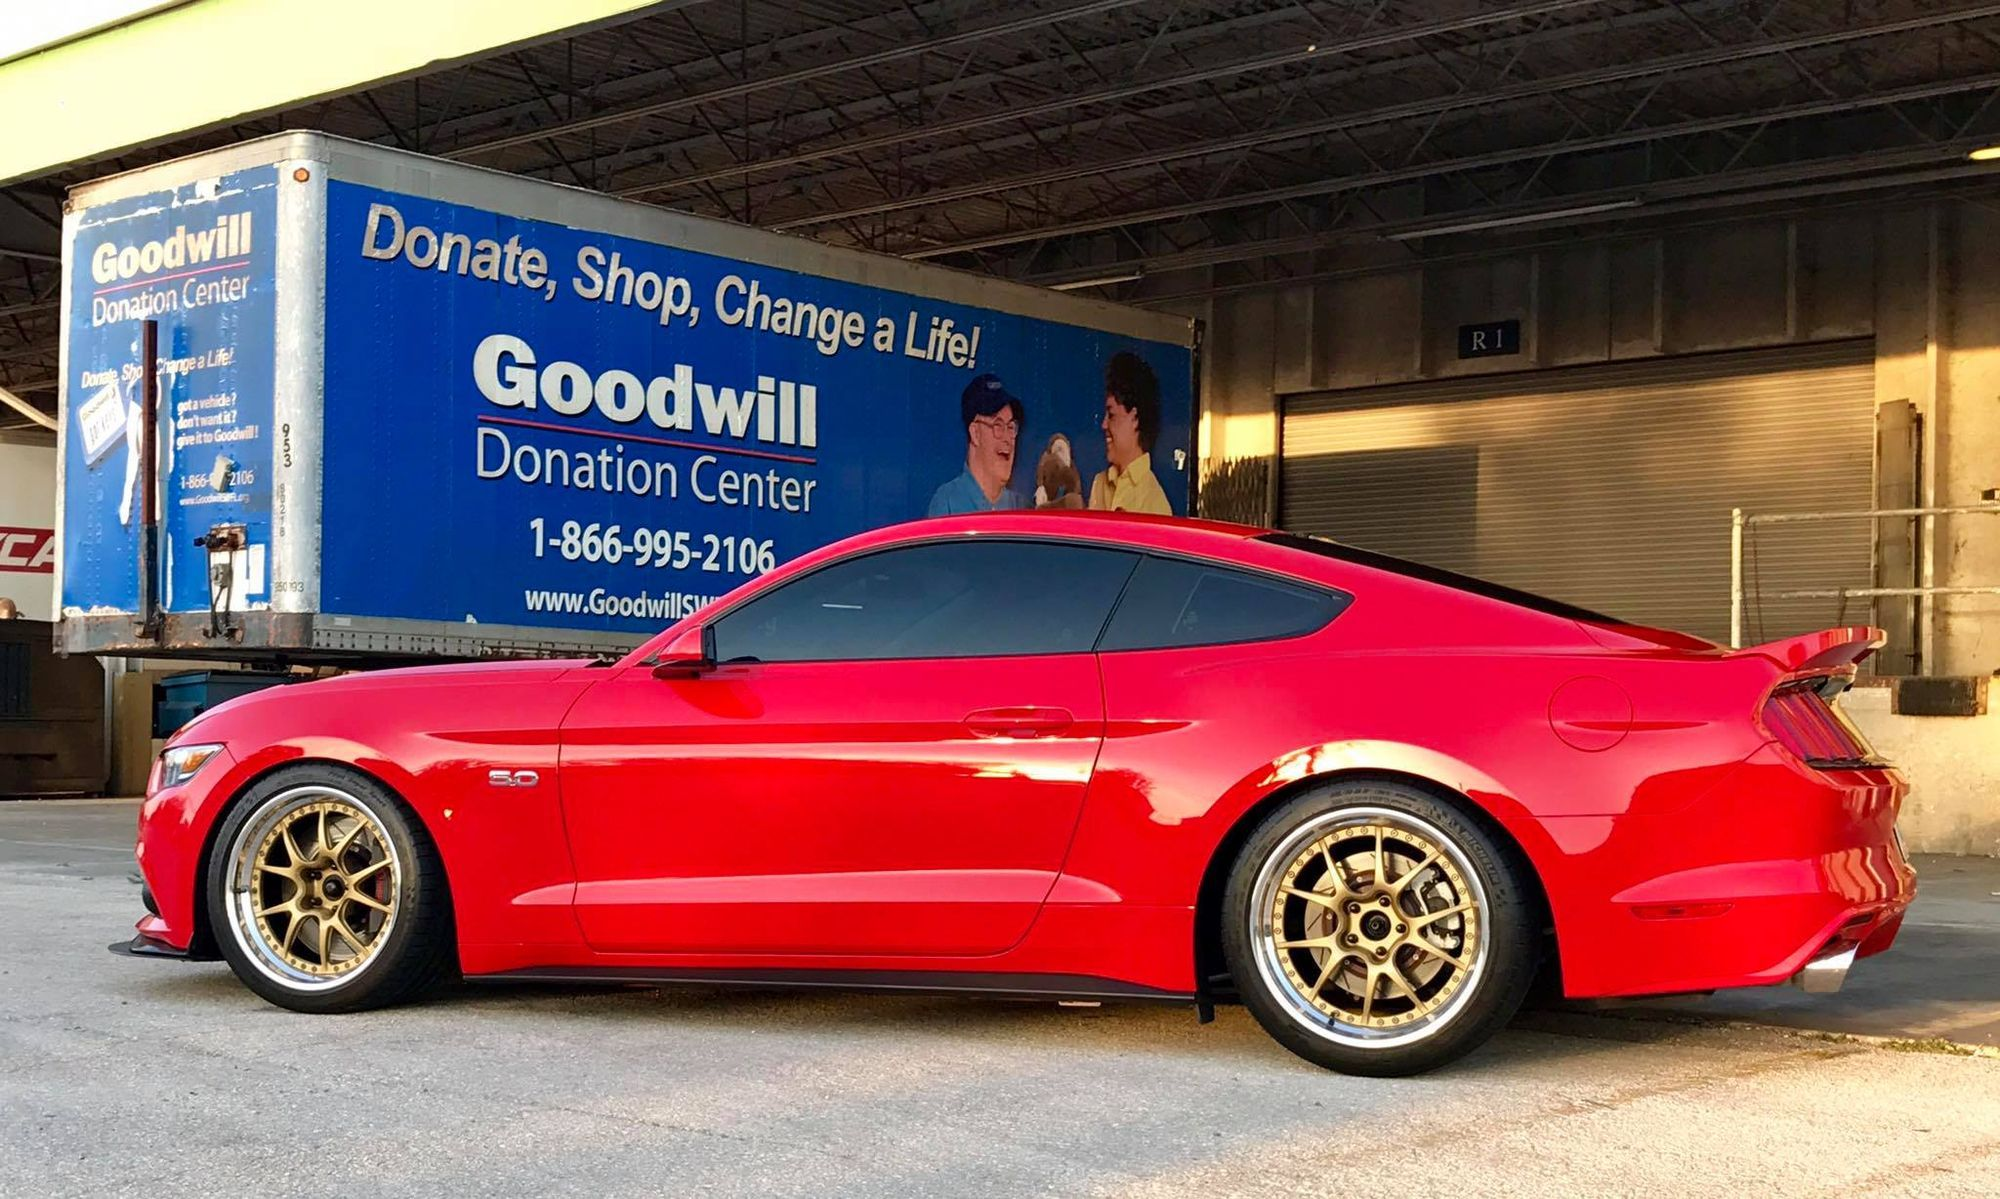 2016 Ford Mustang | Sharad's 700HP UPR Products S550 Mustang GT on Forgeline GA3R Open Lug Wheels